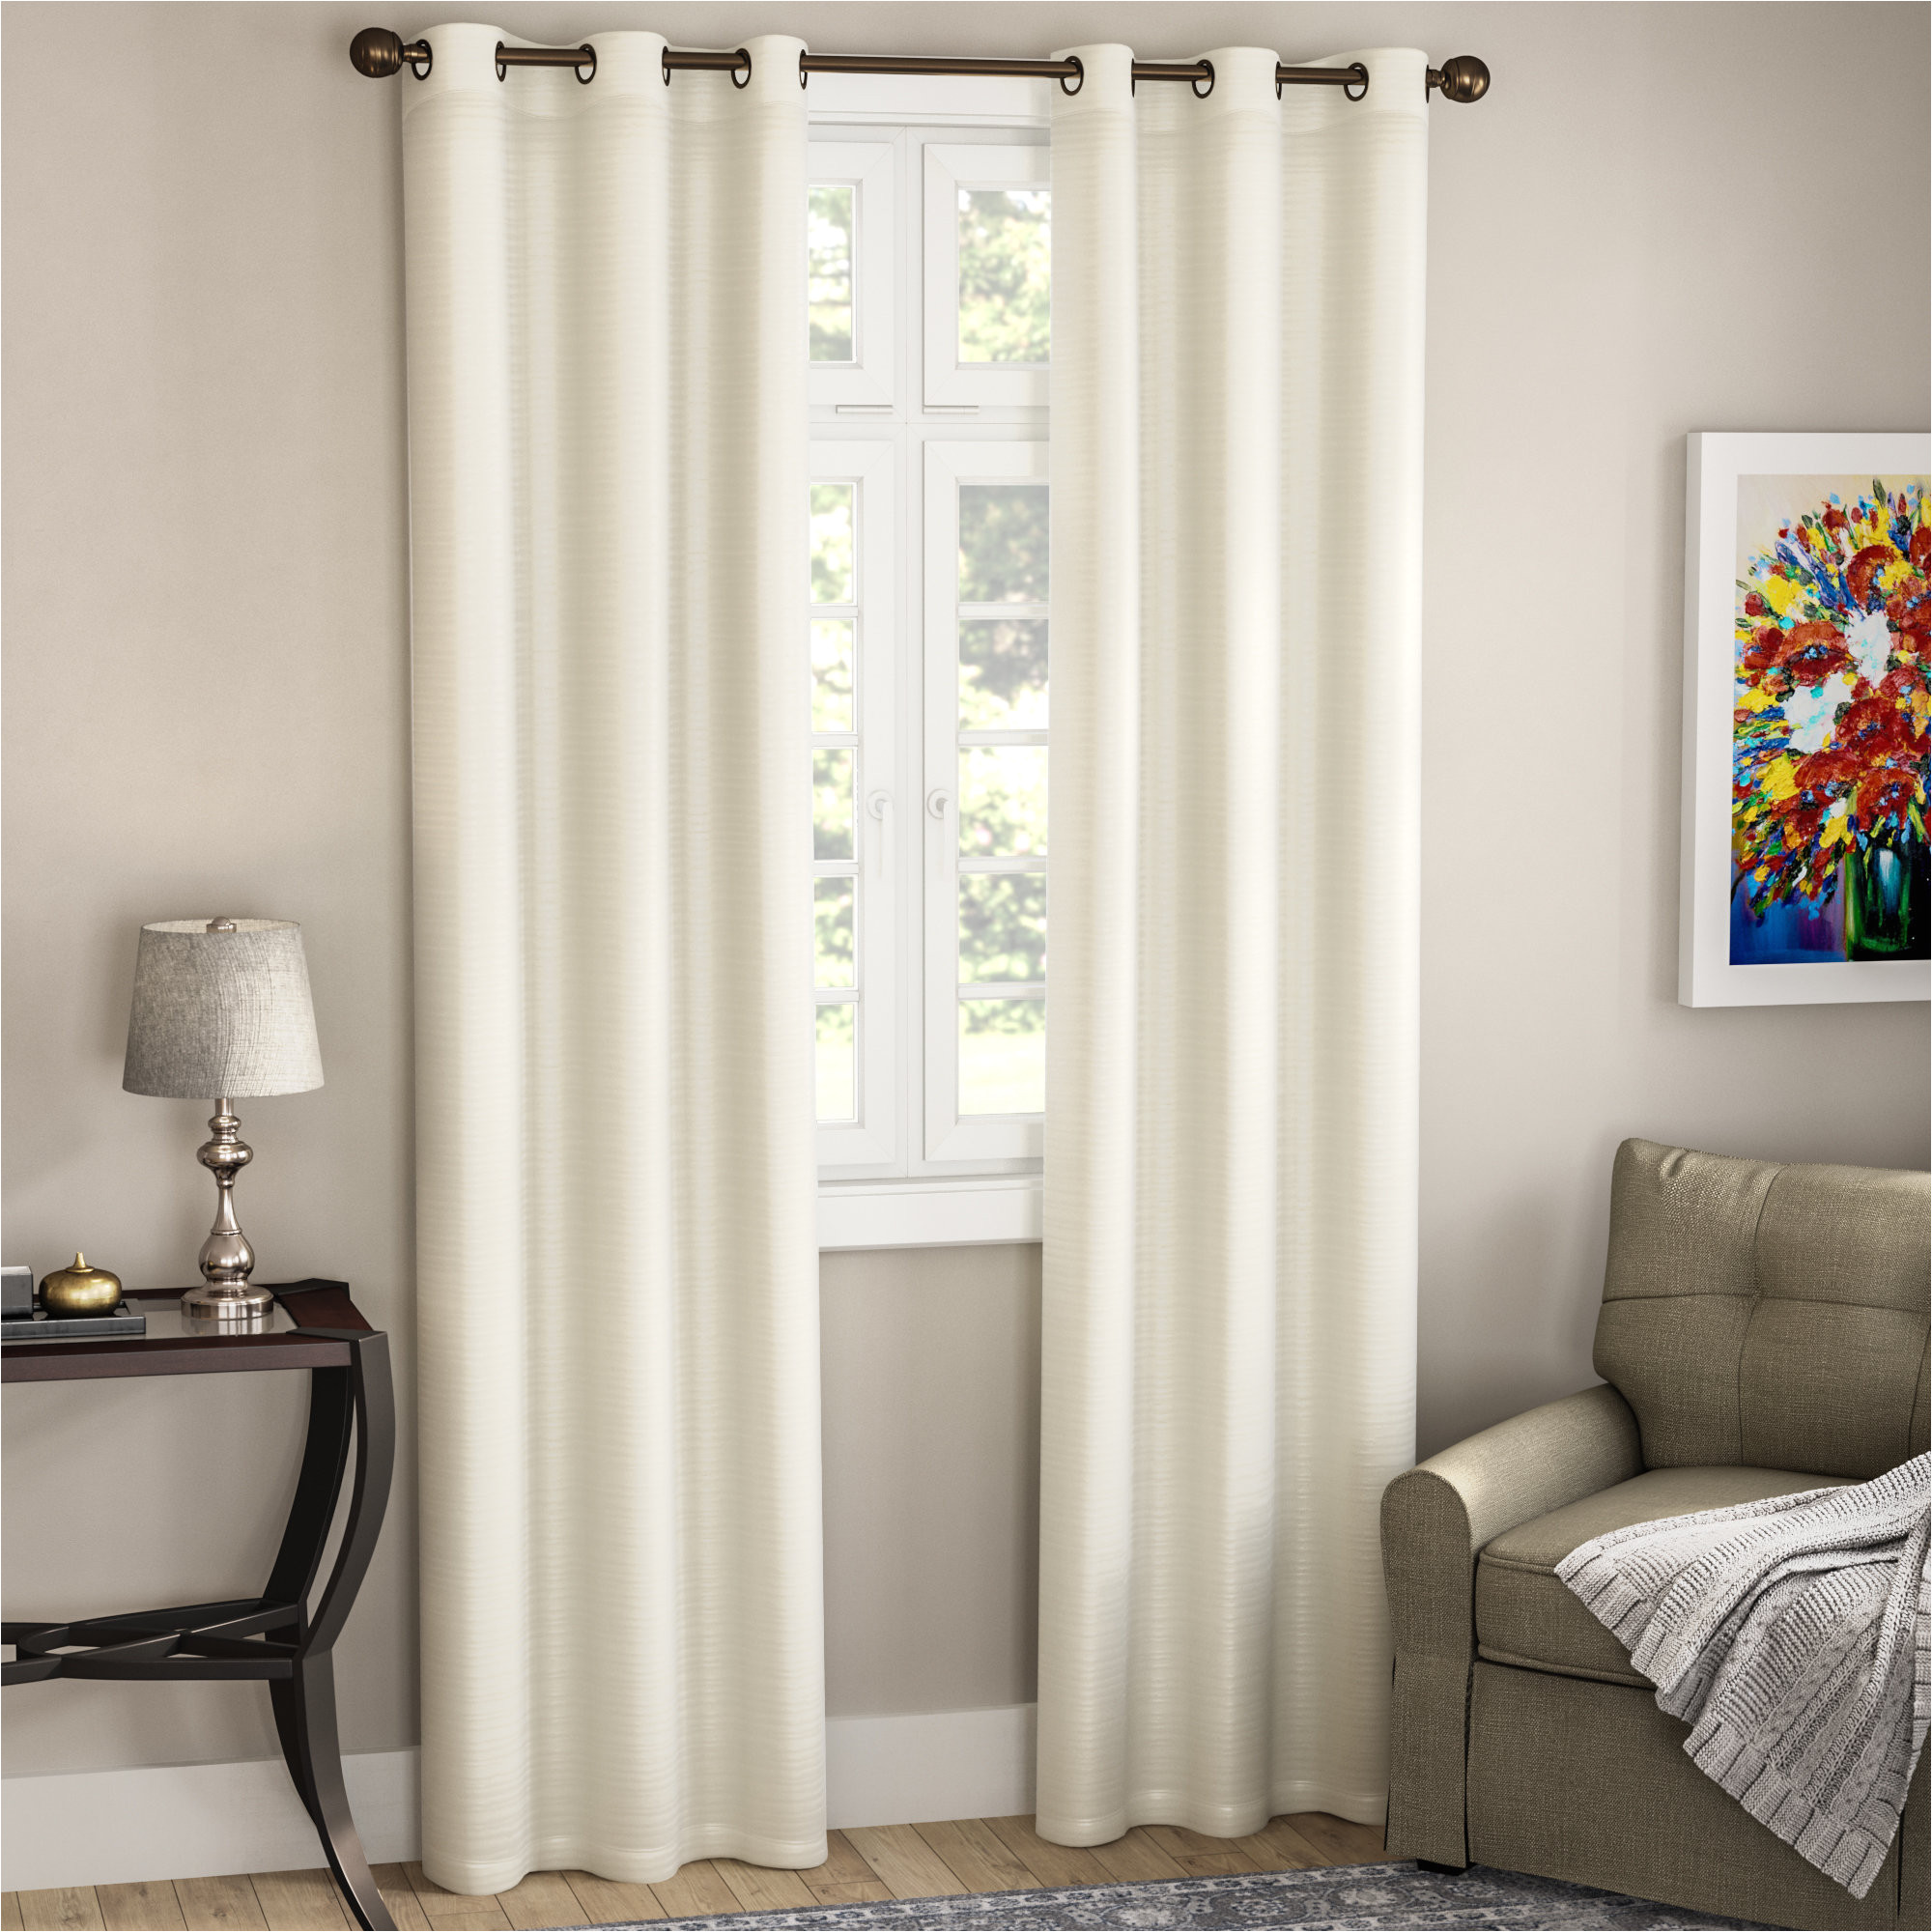 alcott hill edison solid room darkening grommet curtain panels reviews wayfair